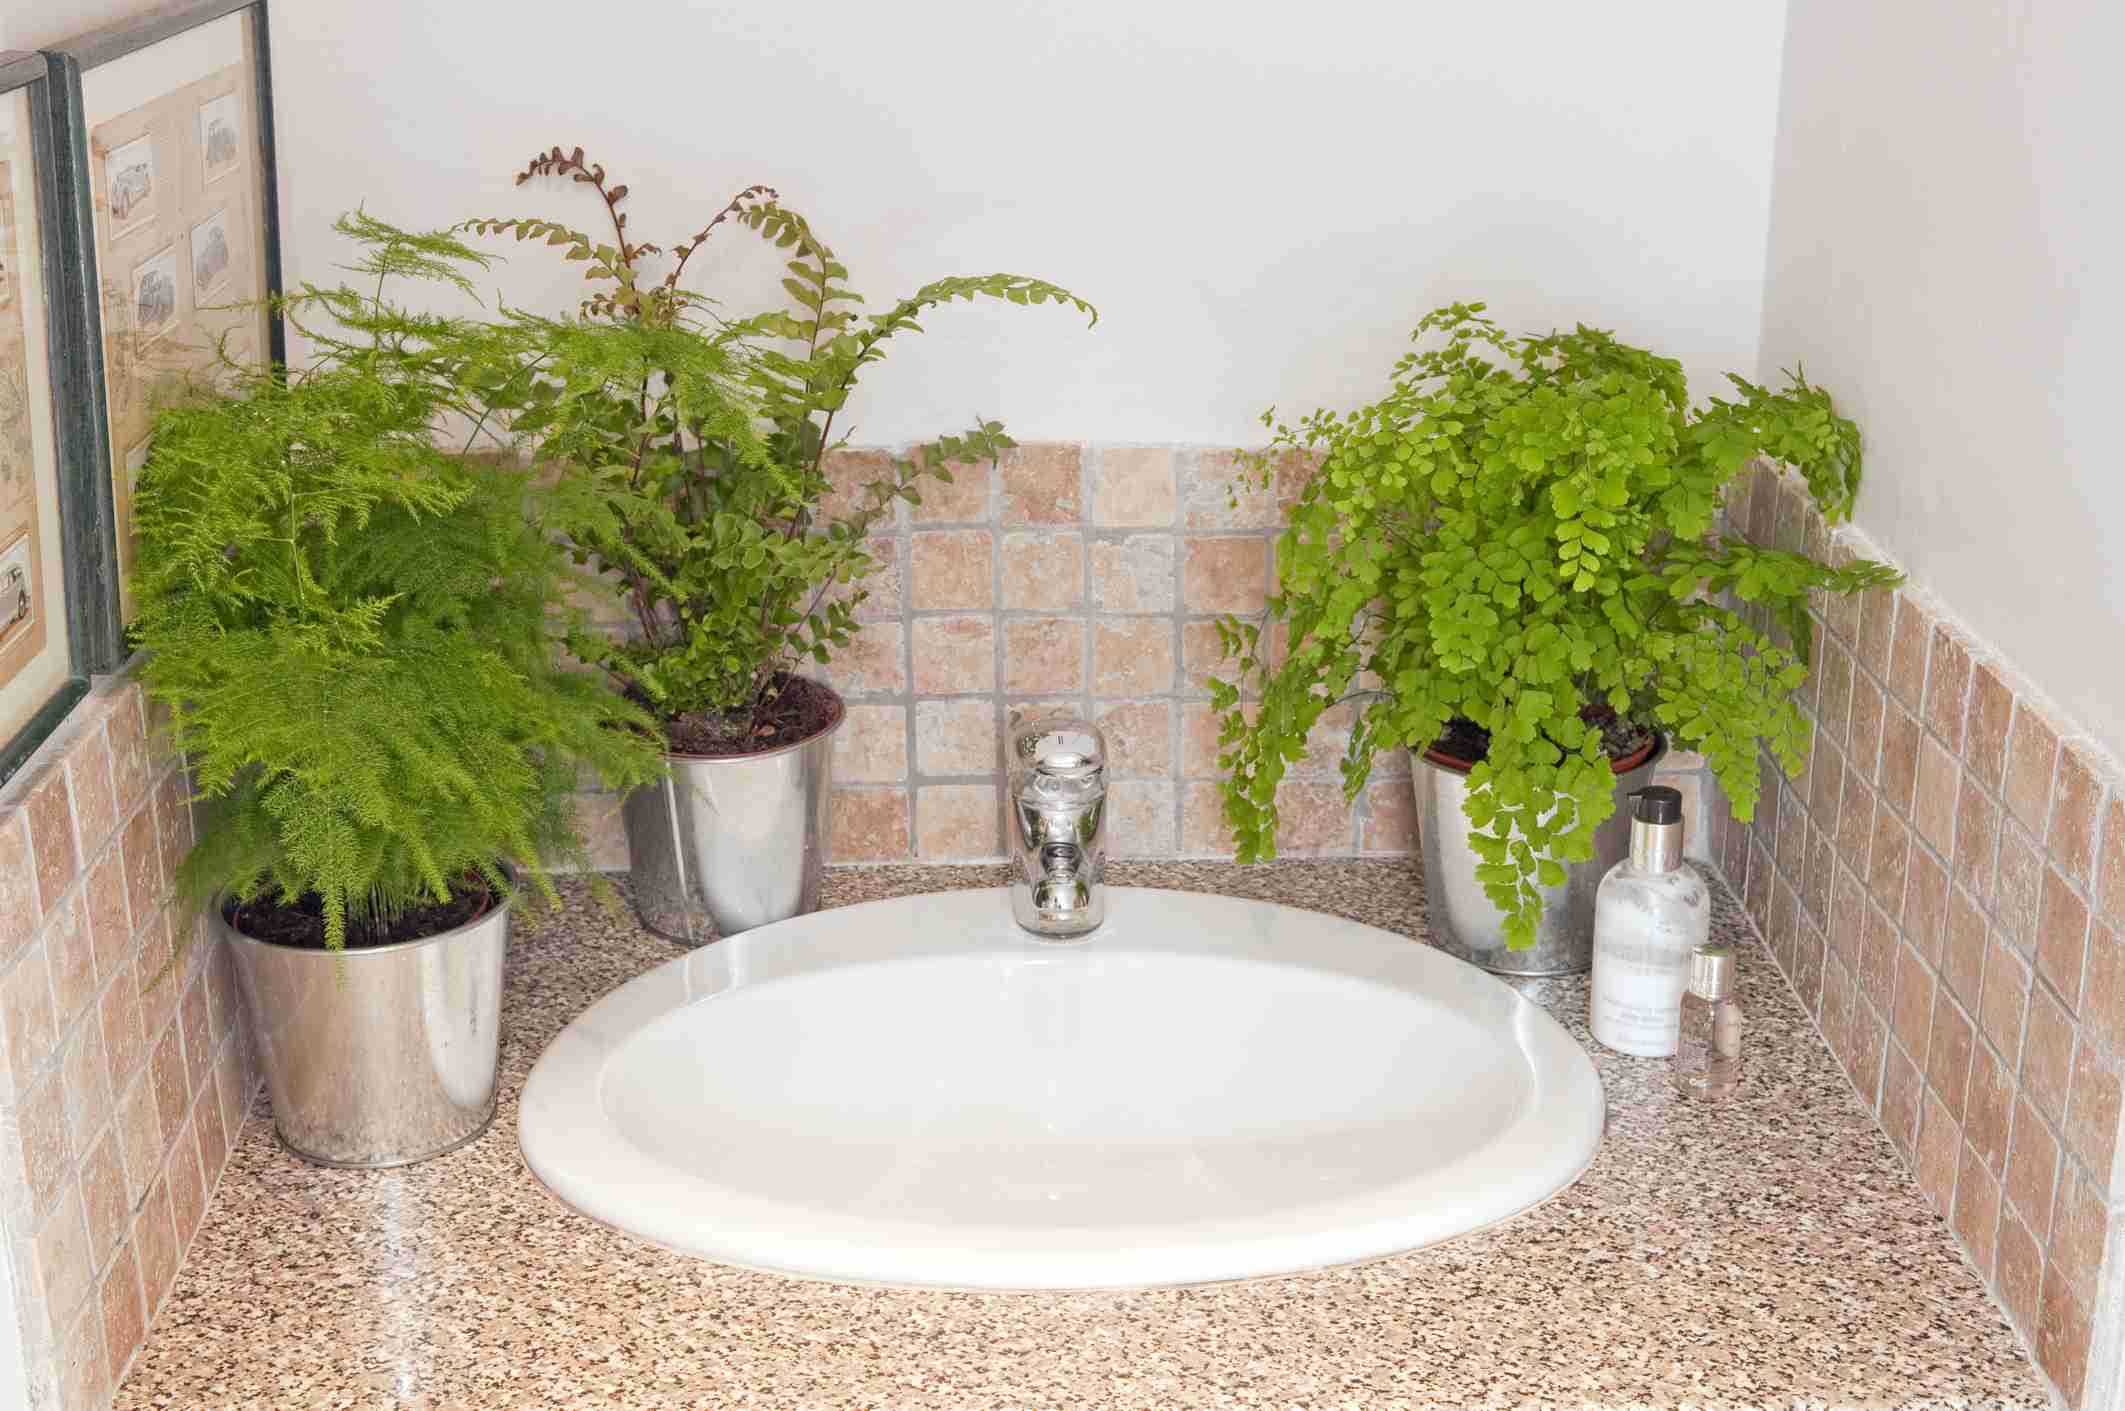 ferns on bathroom counter - Bathroom Plants